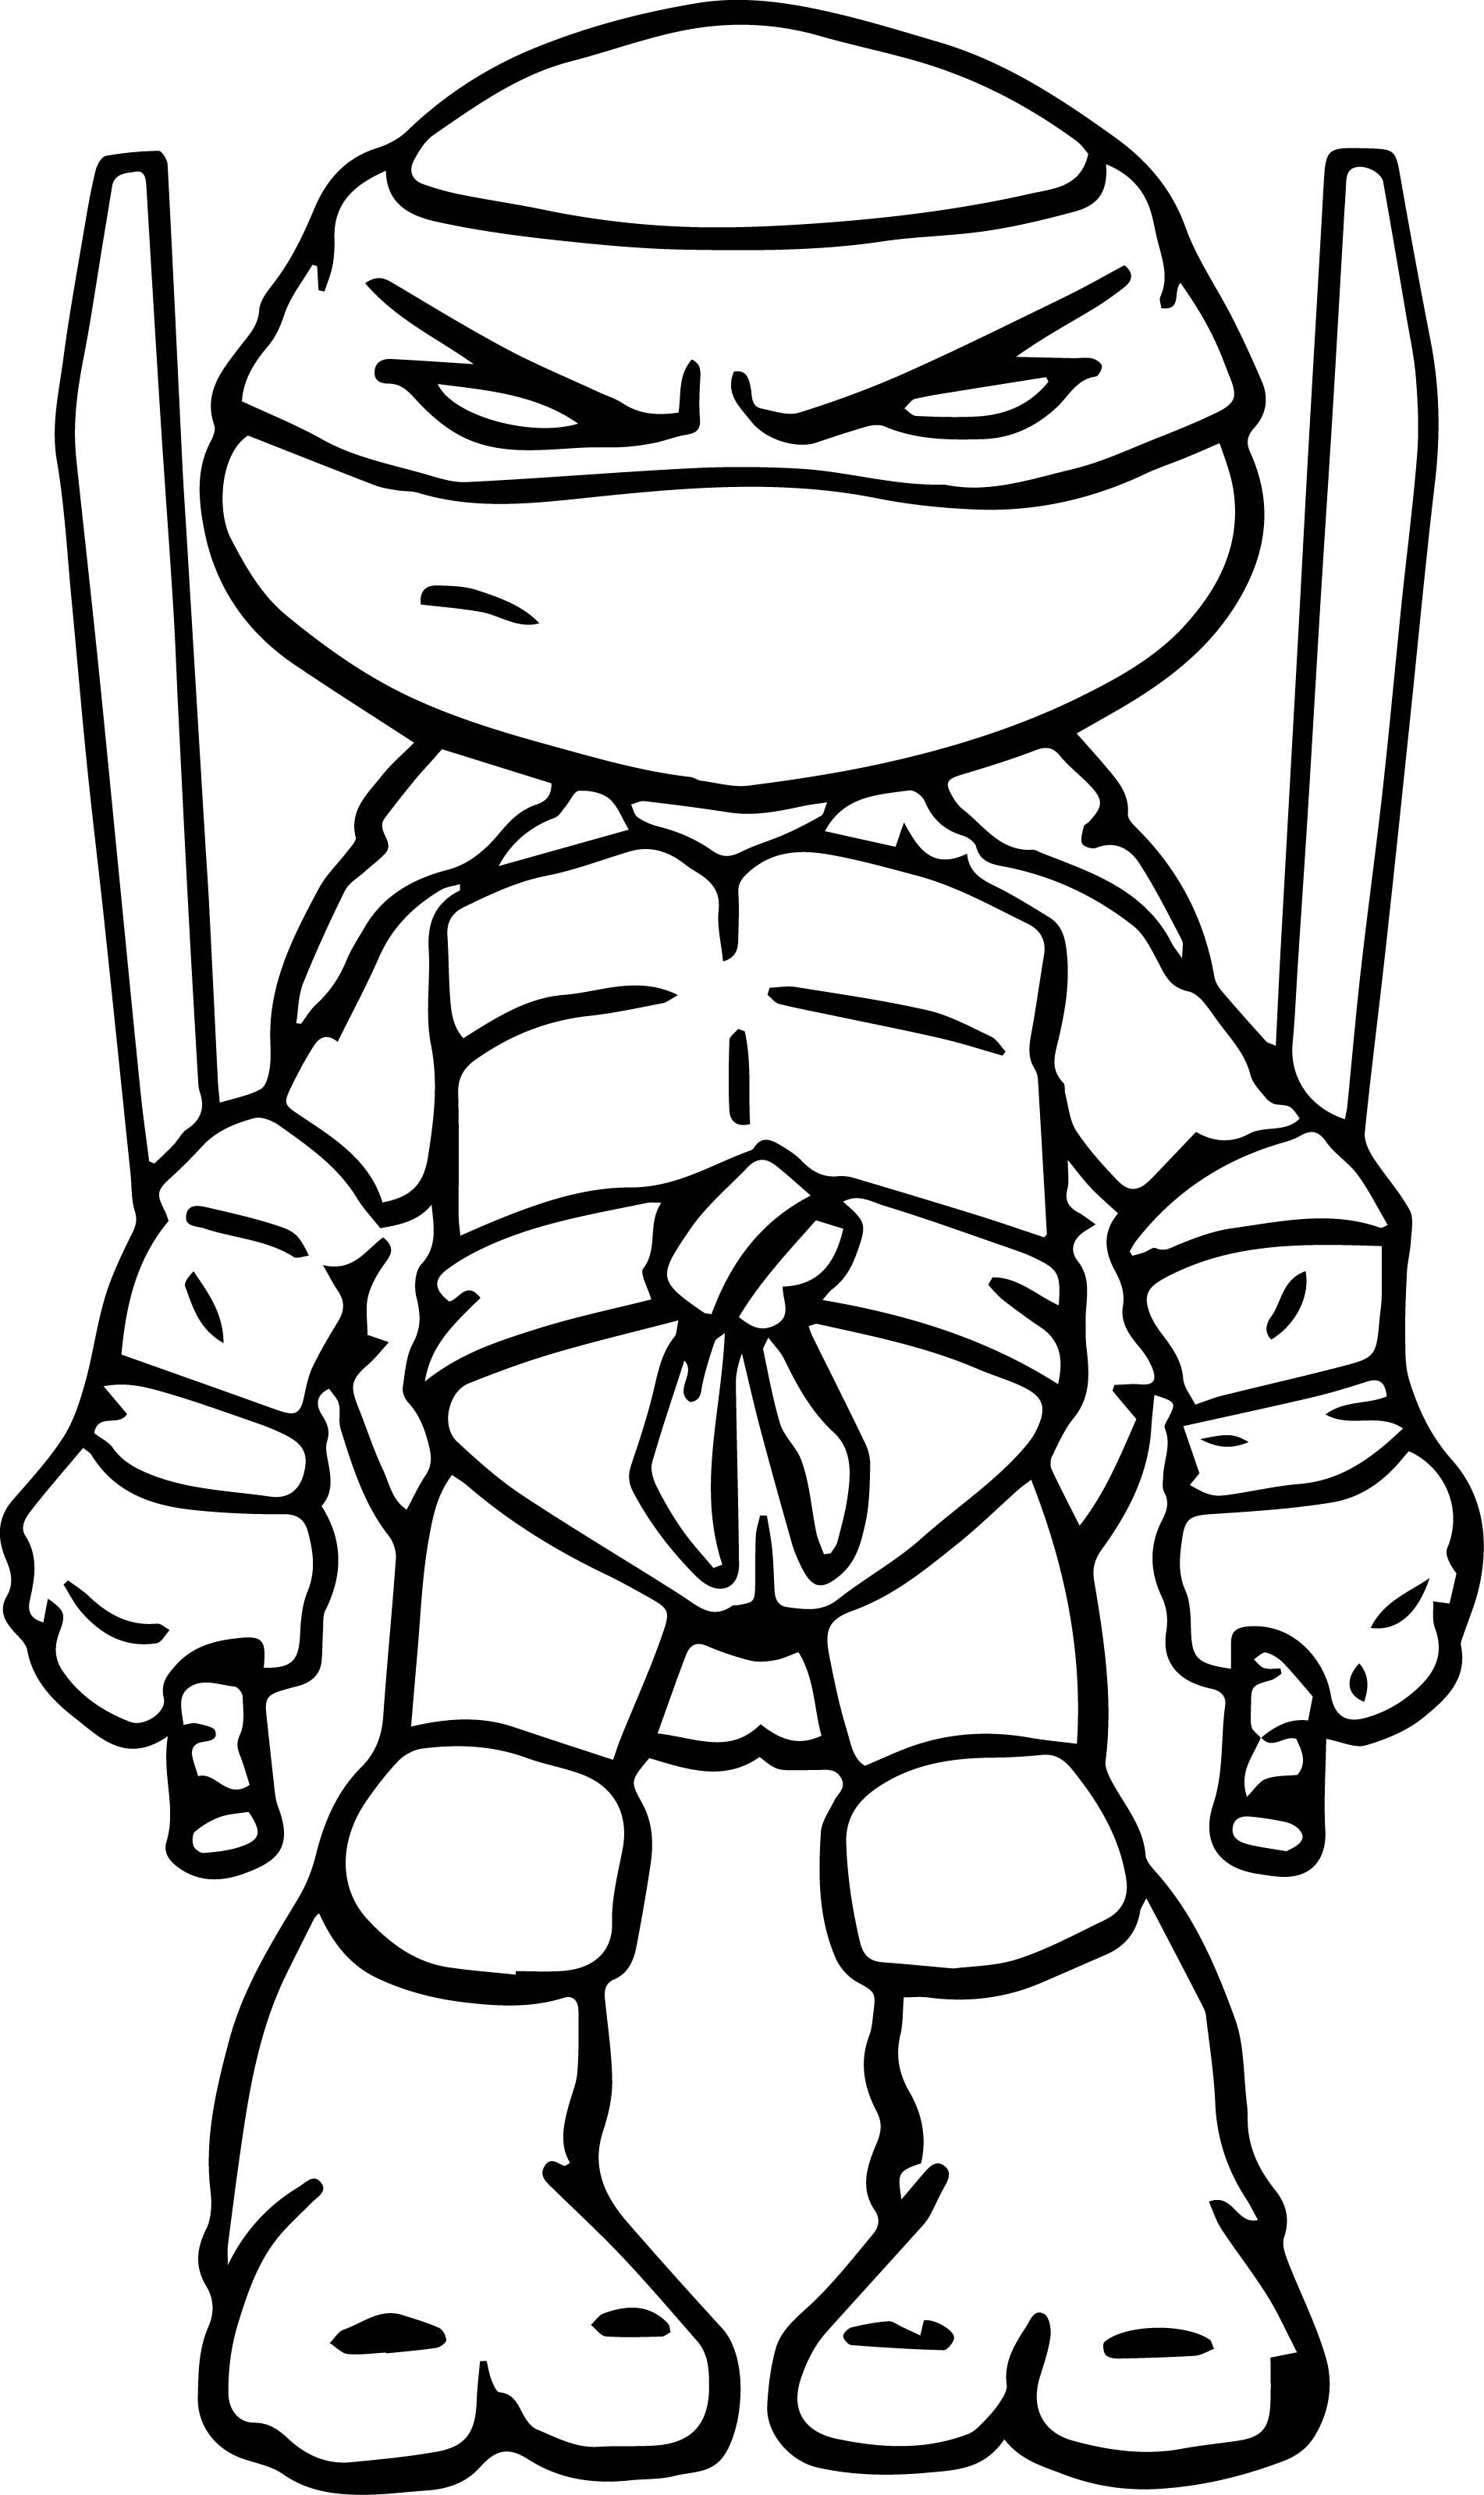 printable coloring pages ninja turtles - photo#25